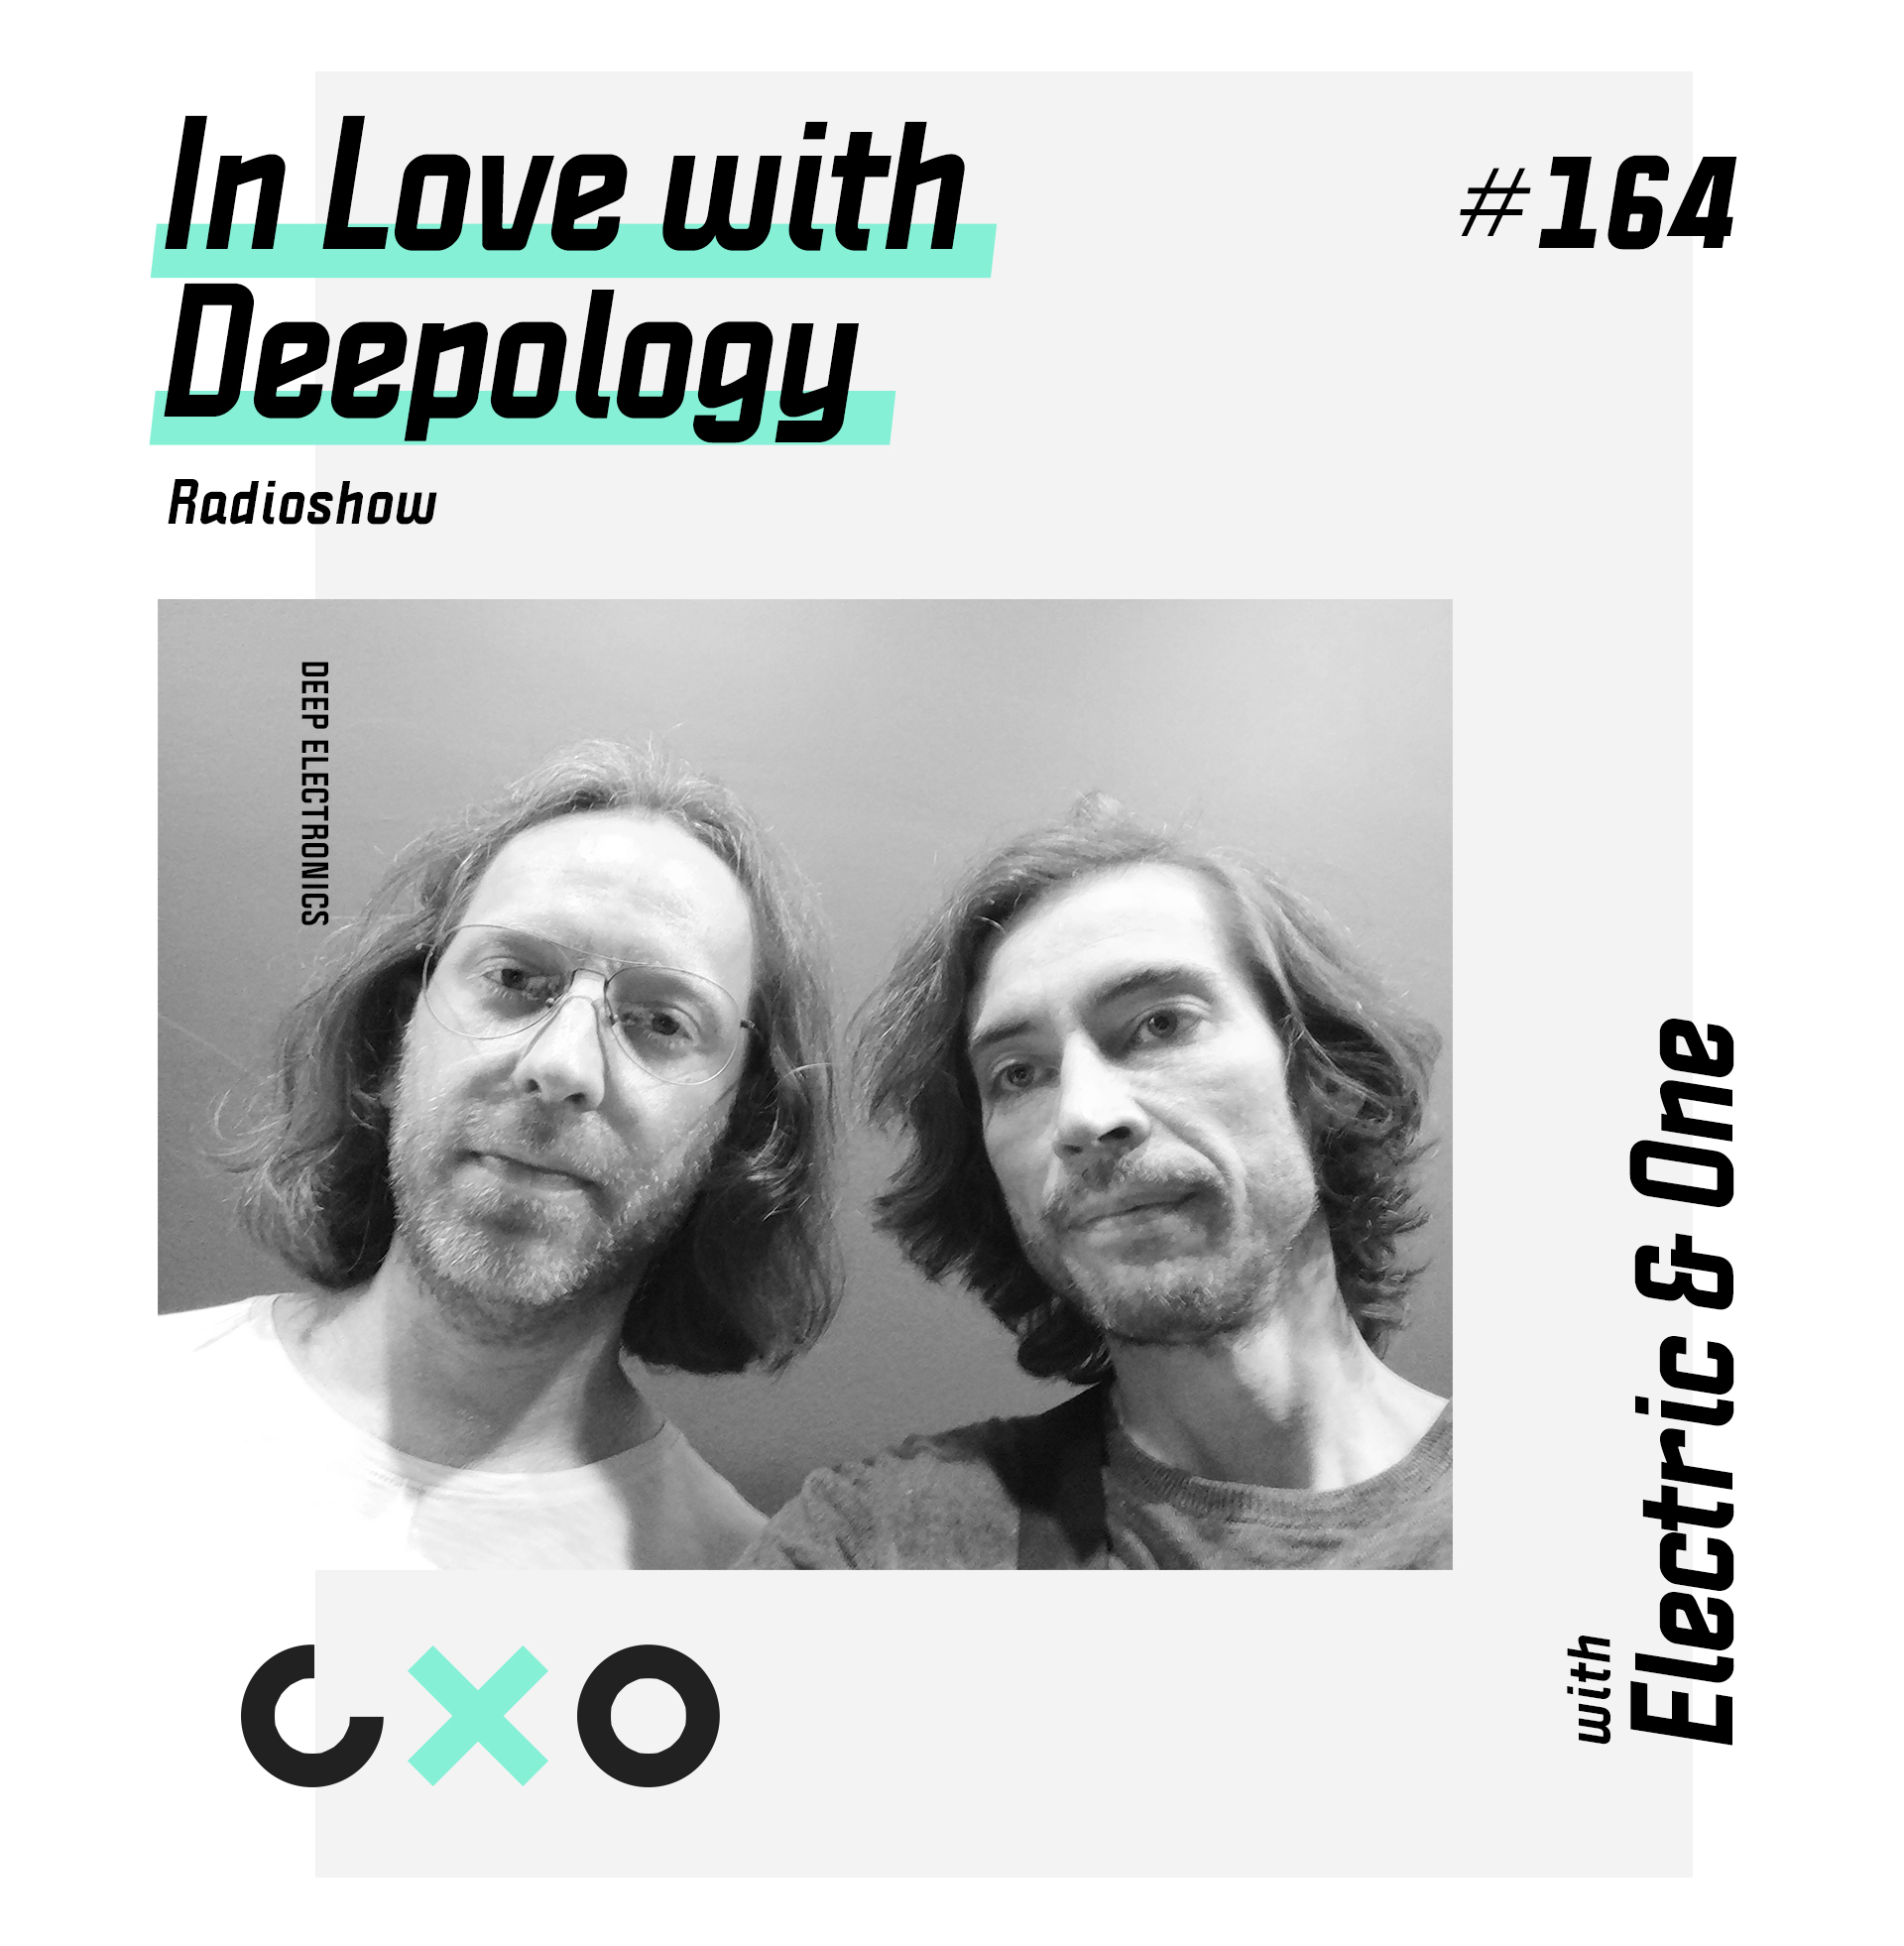 In Love with Deepology radioshow Image